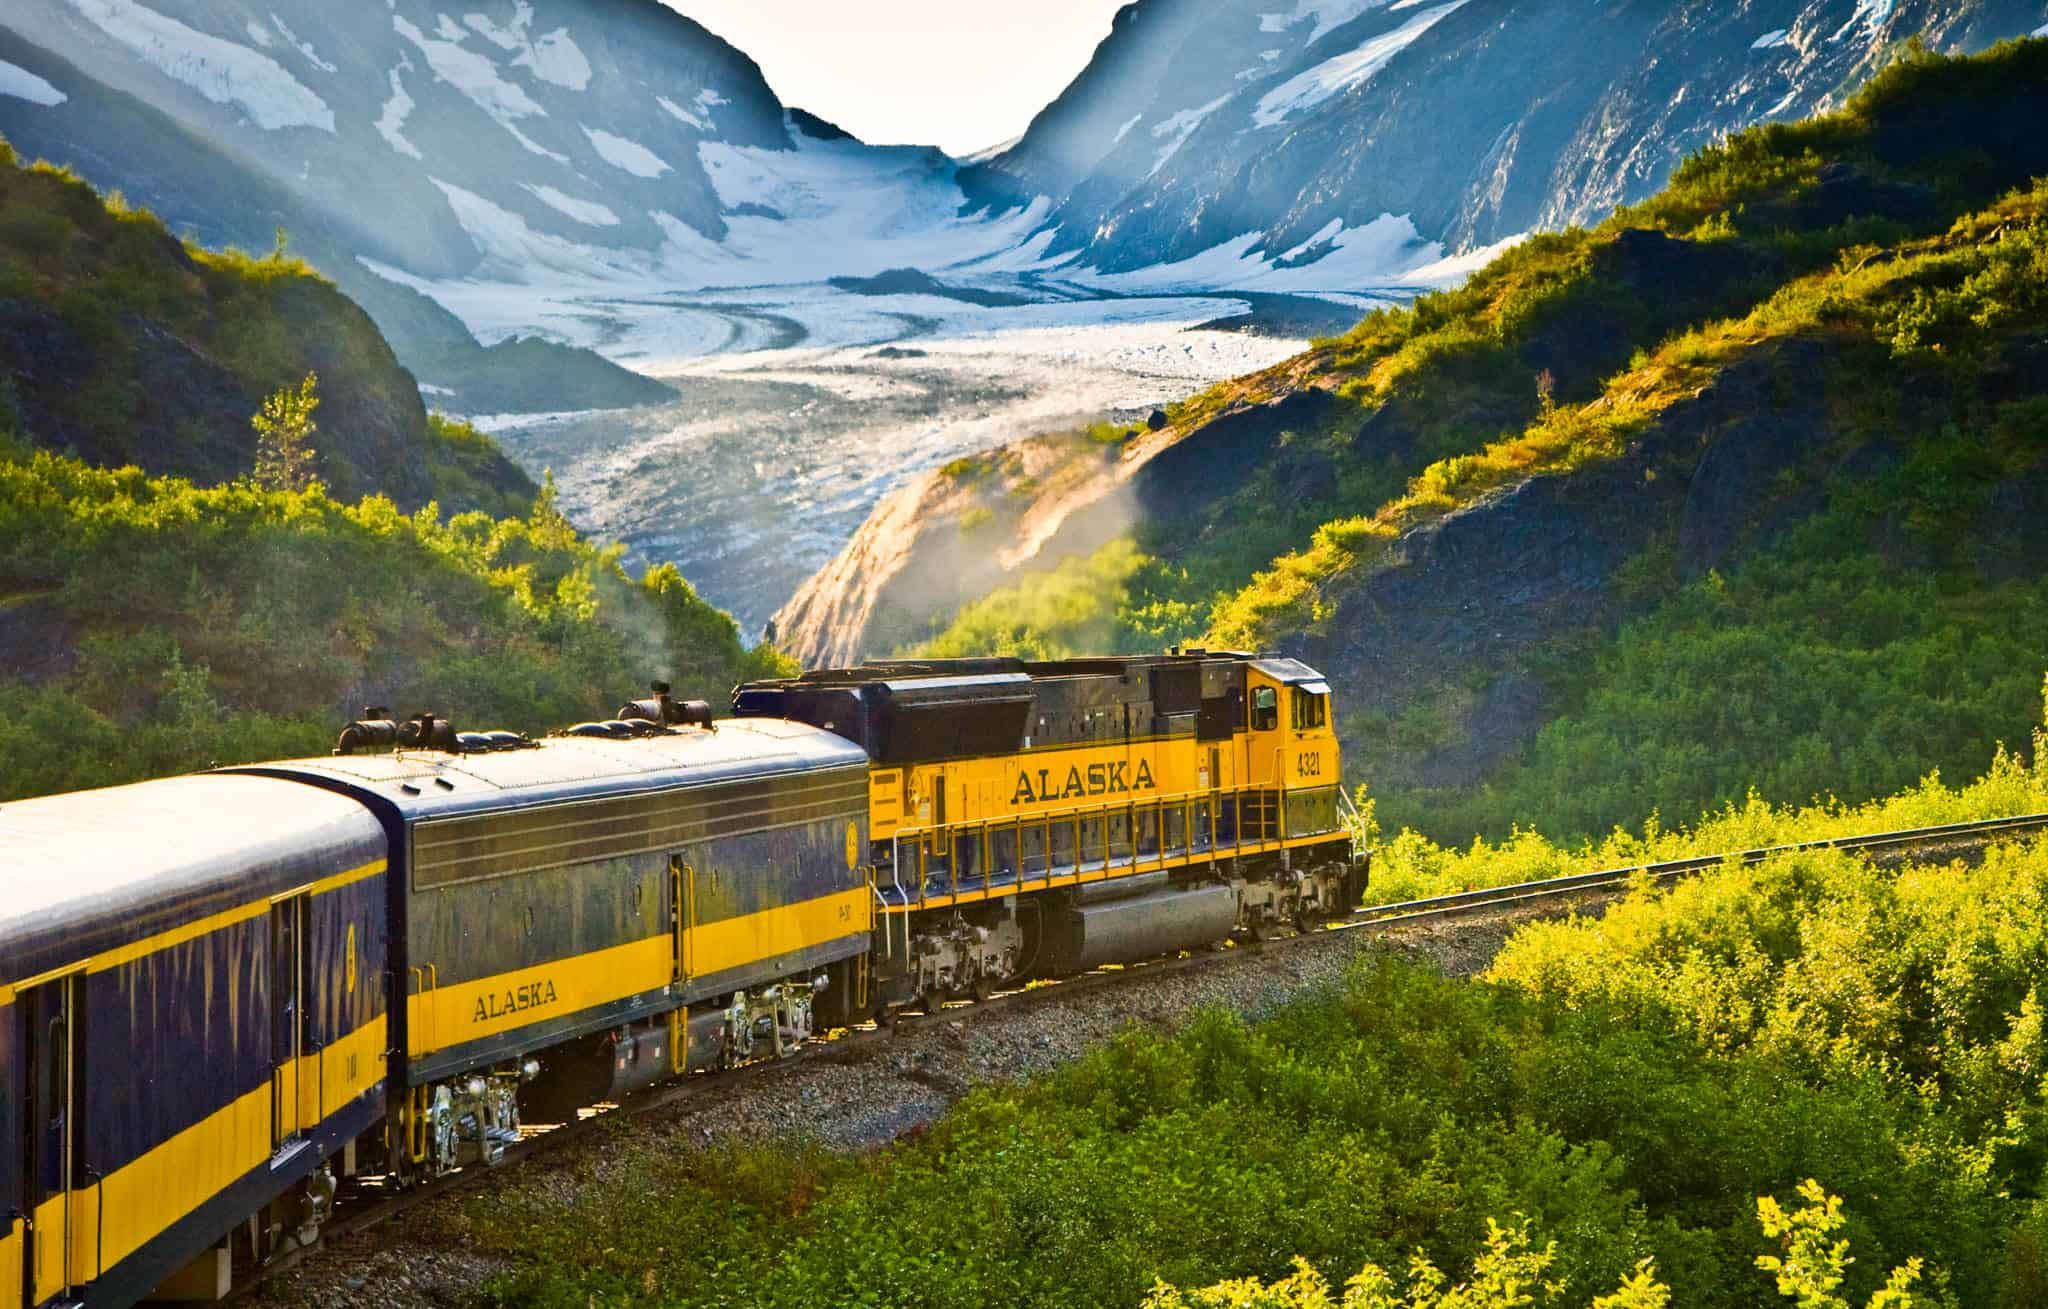 Alaska Railroad trains